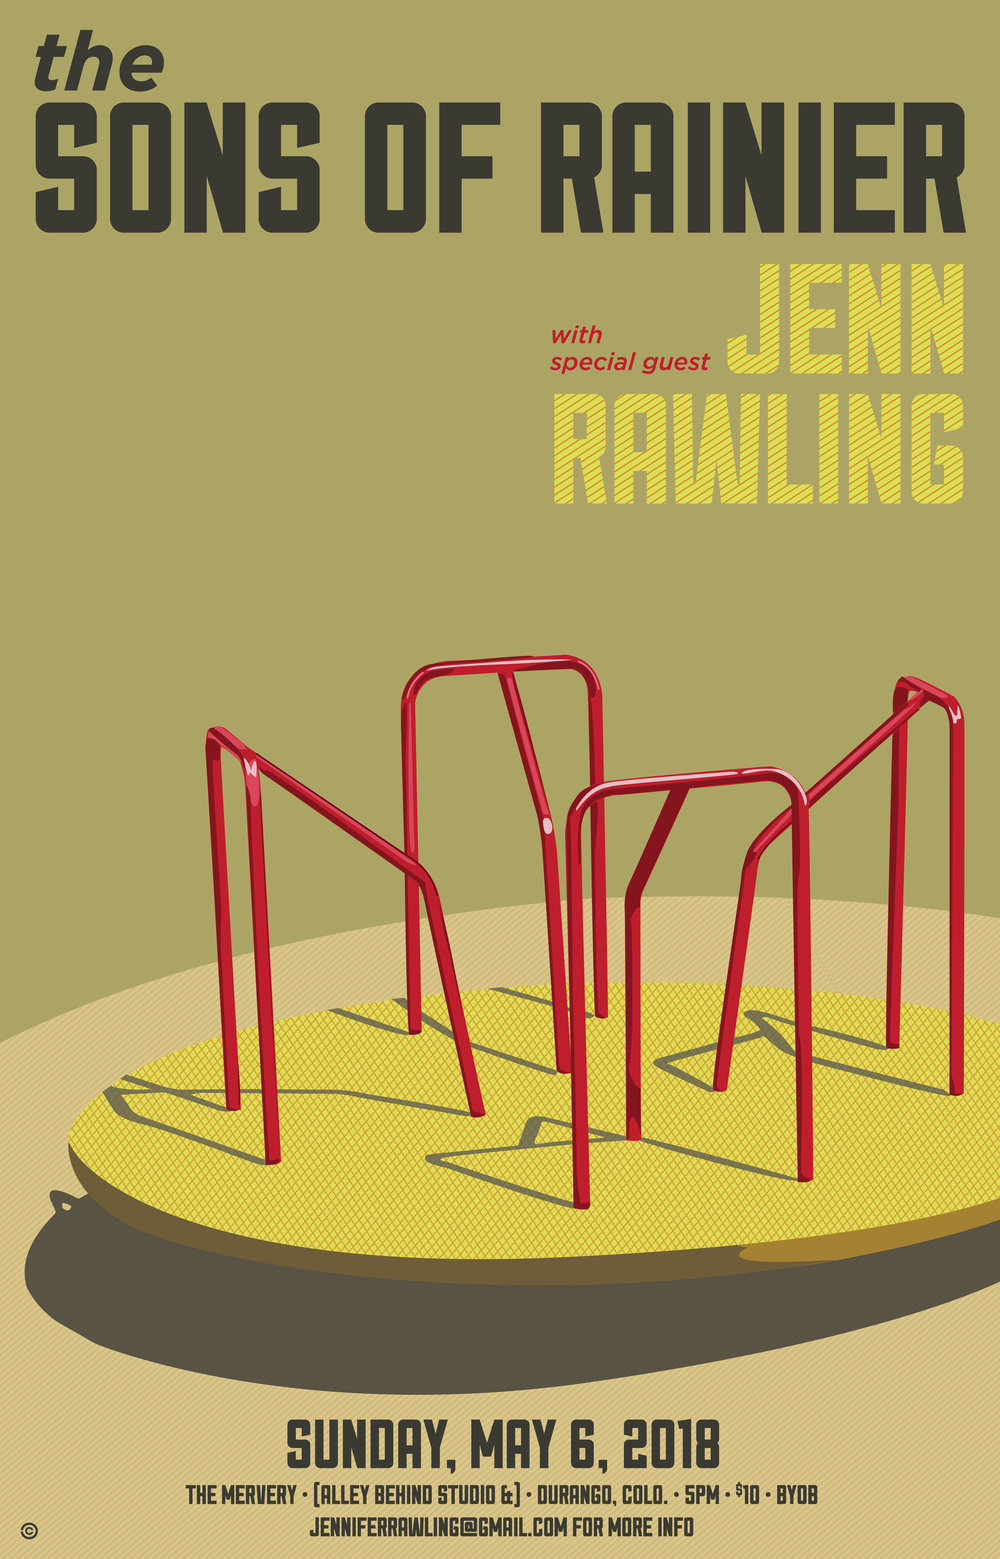 Merry Go Round - The Sons of Rainer // Jenn Rawling